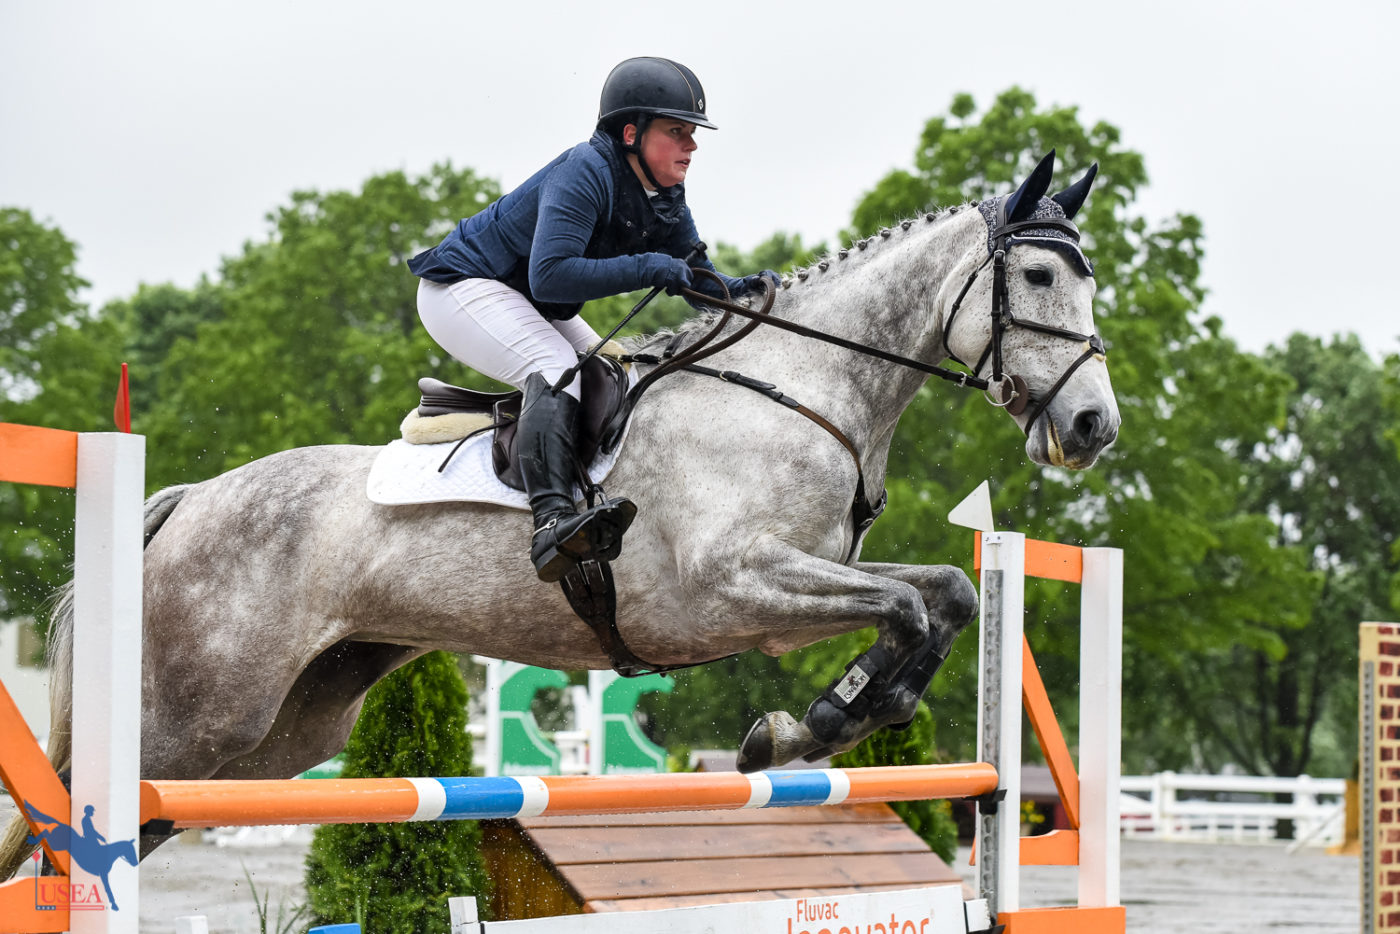 9th - Andi Lawrence and Cooley Northern Mist - 39.2